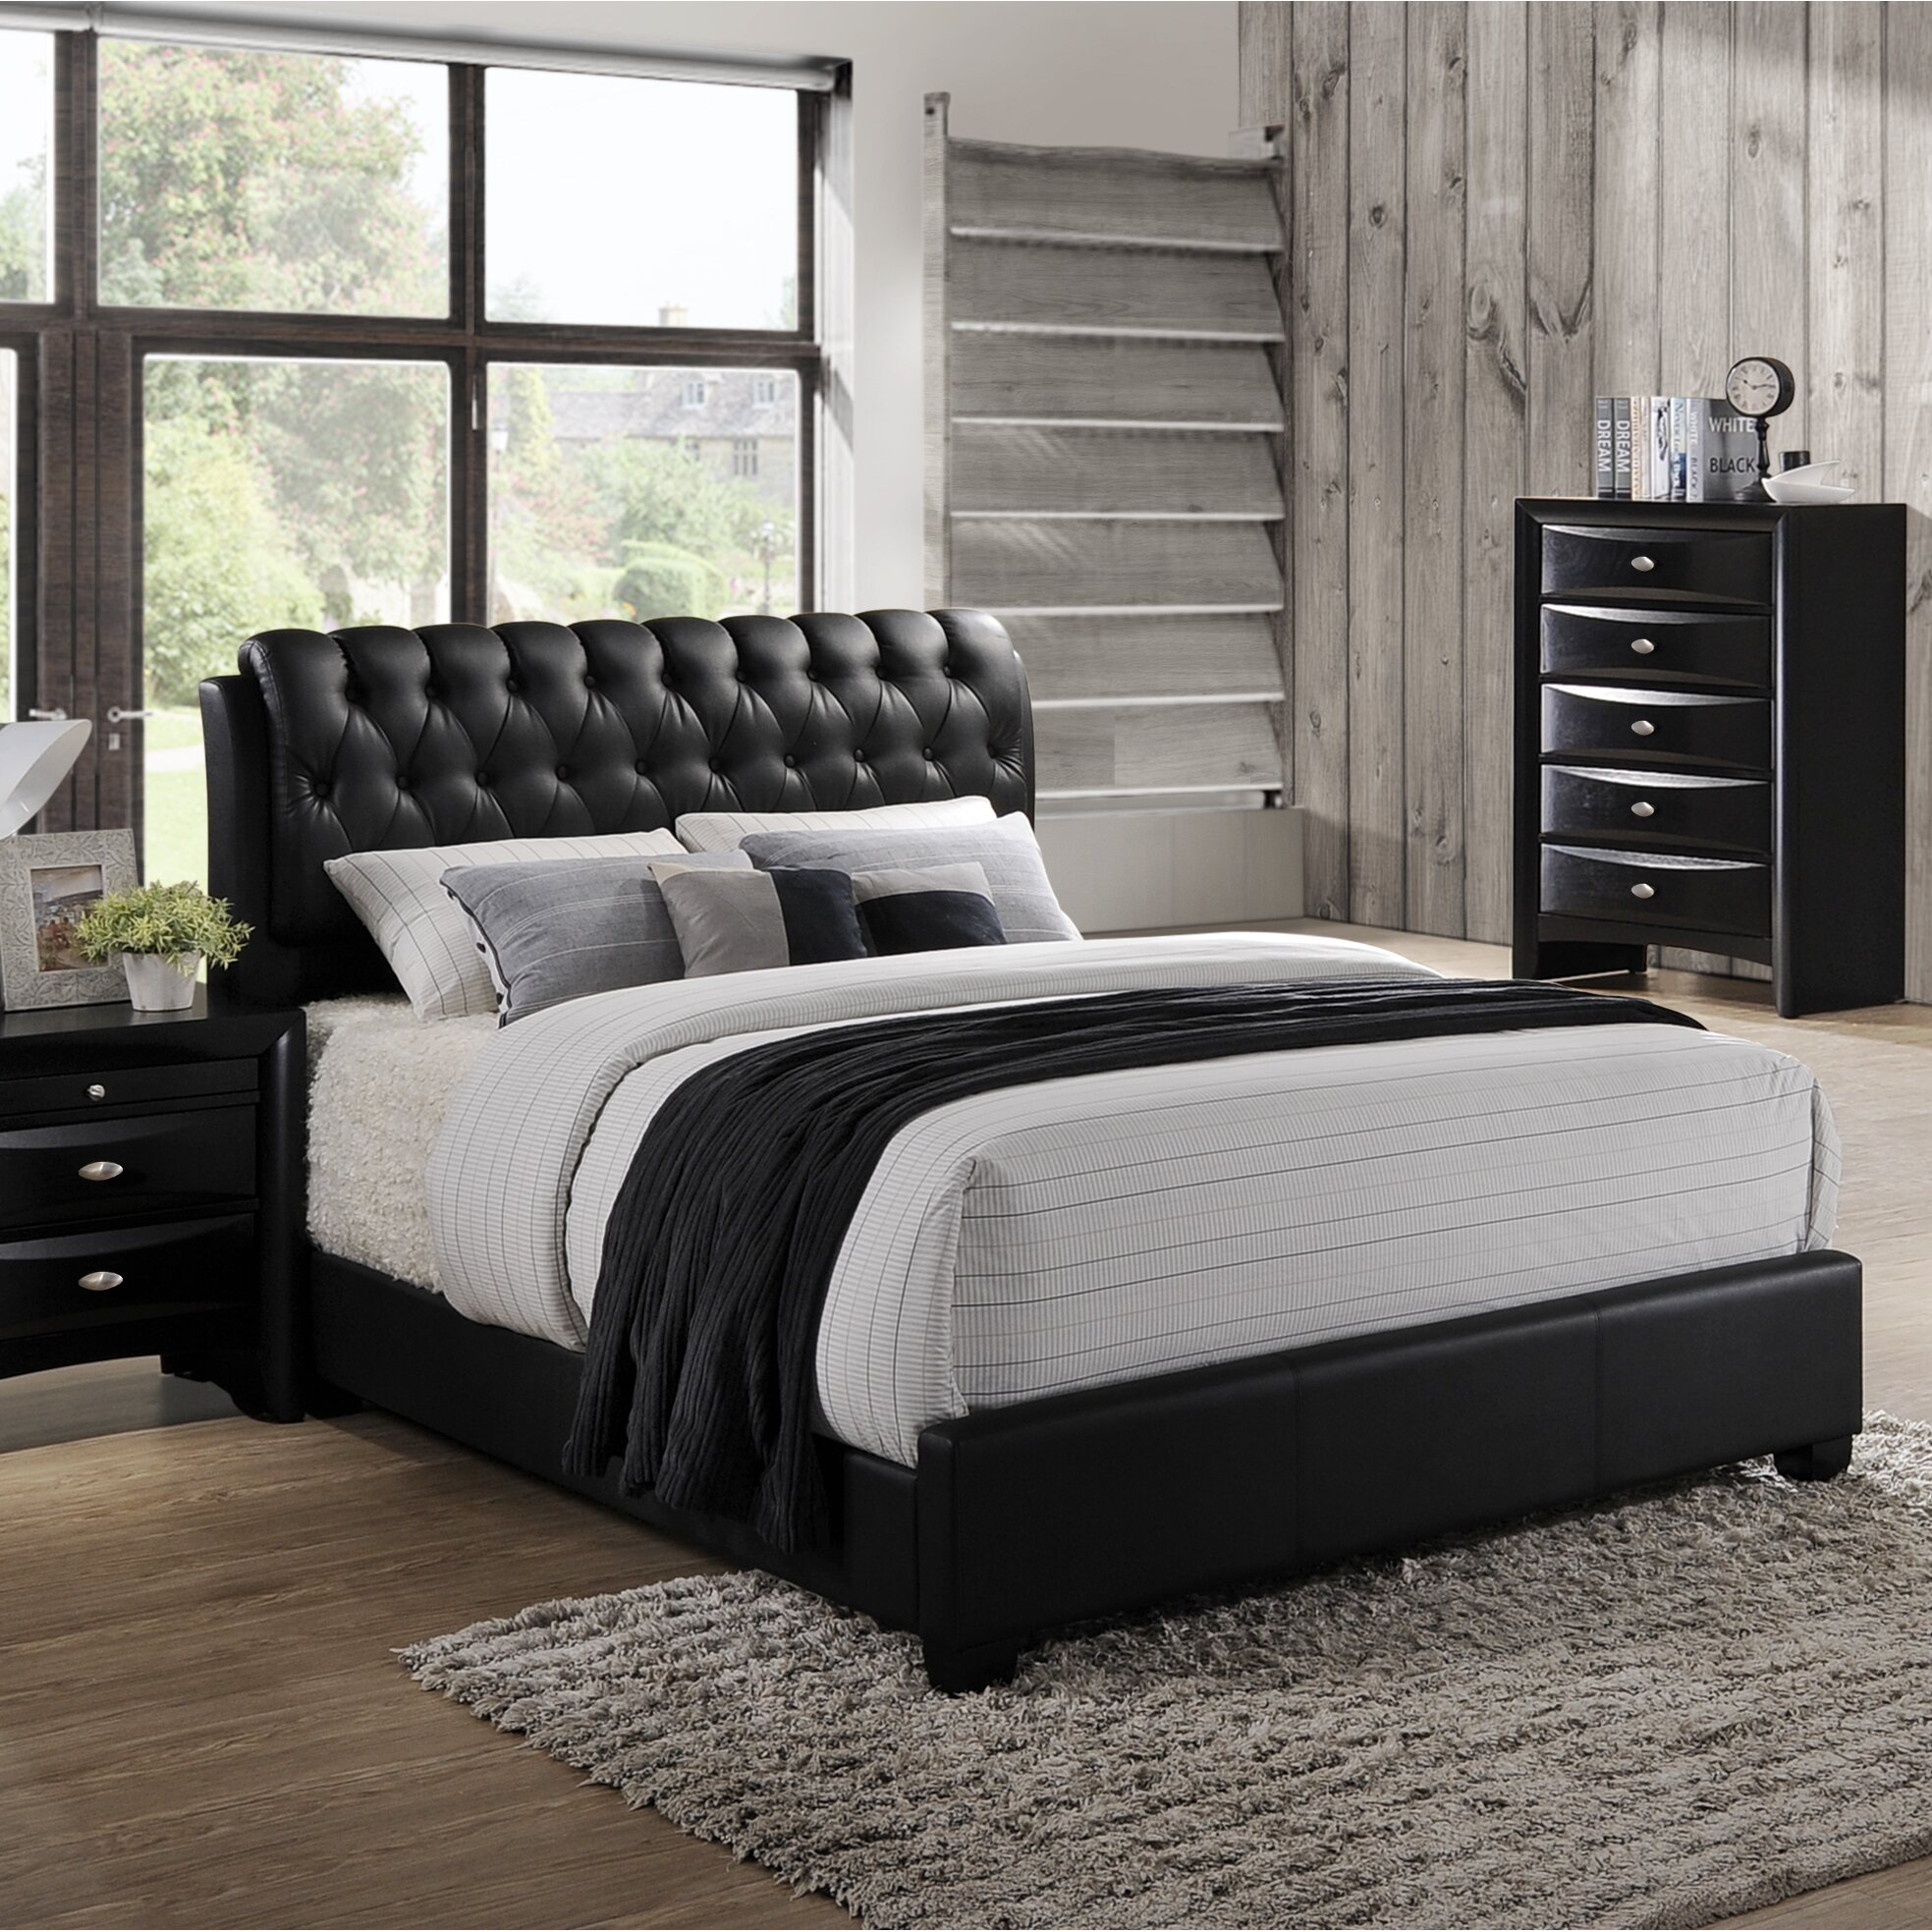 Roundhill Furniture Blemerey Upholstered Platform Bed